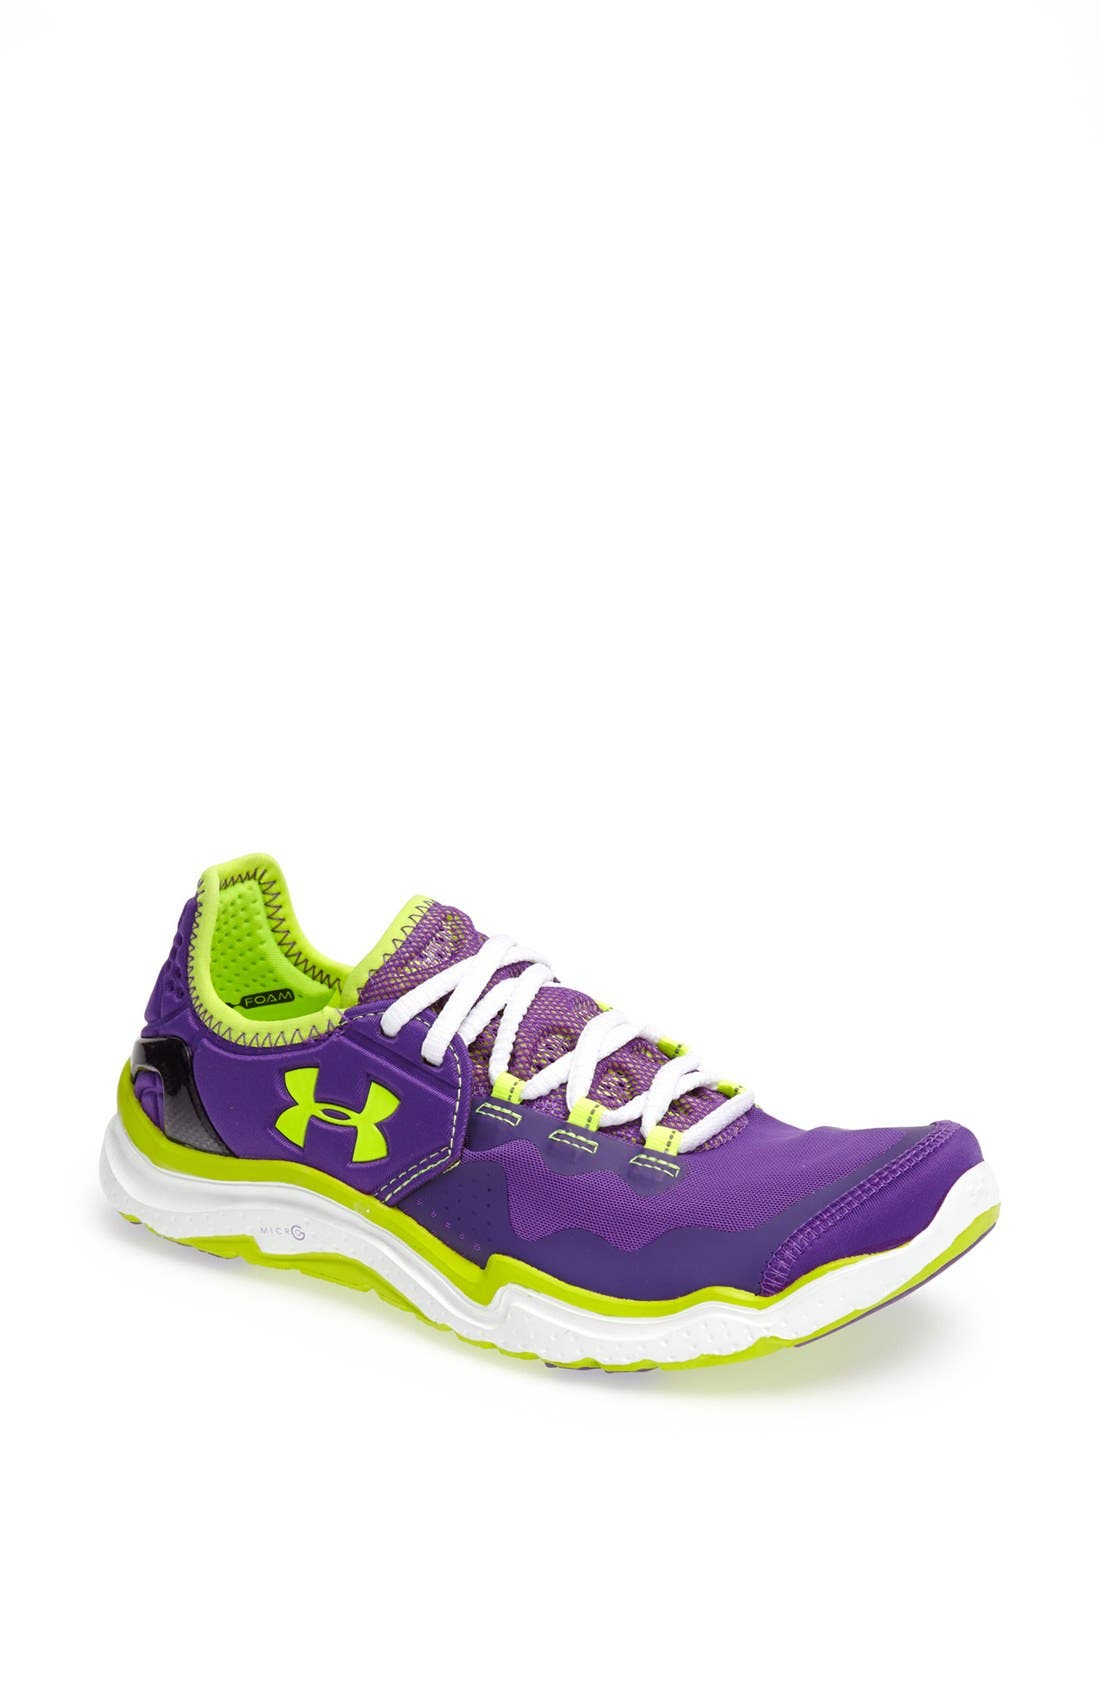 Alternate Image 1 Selected - Under Armour 'Charge RC 2' Running Shoe (Women)